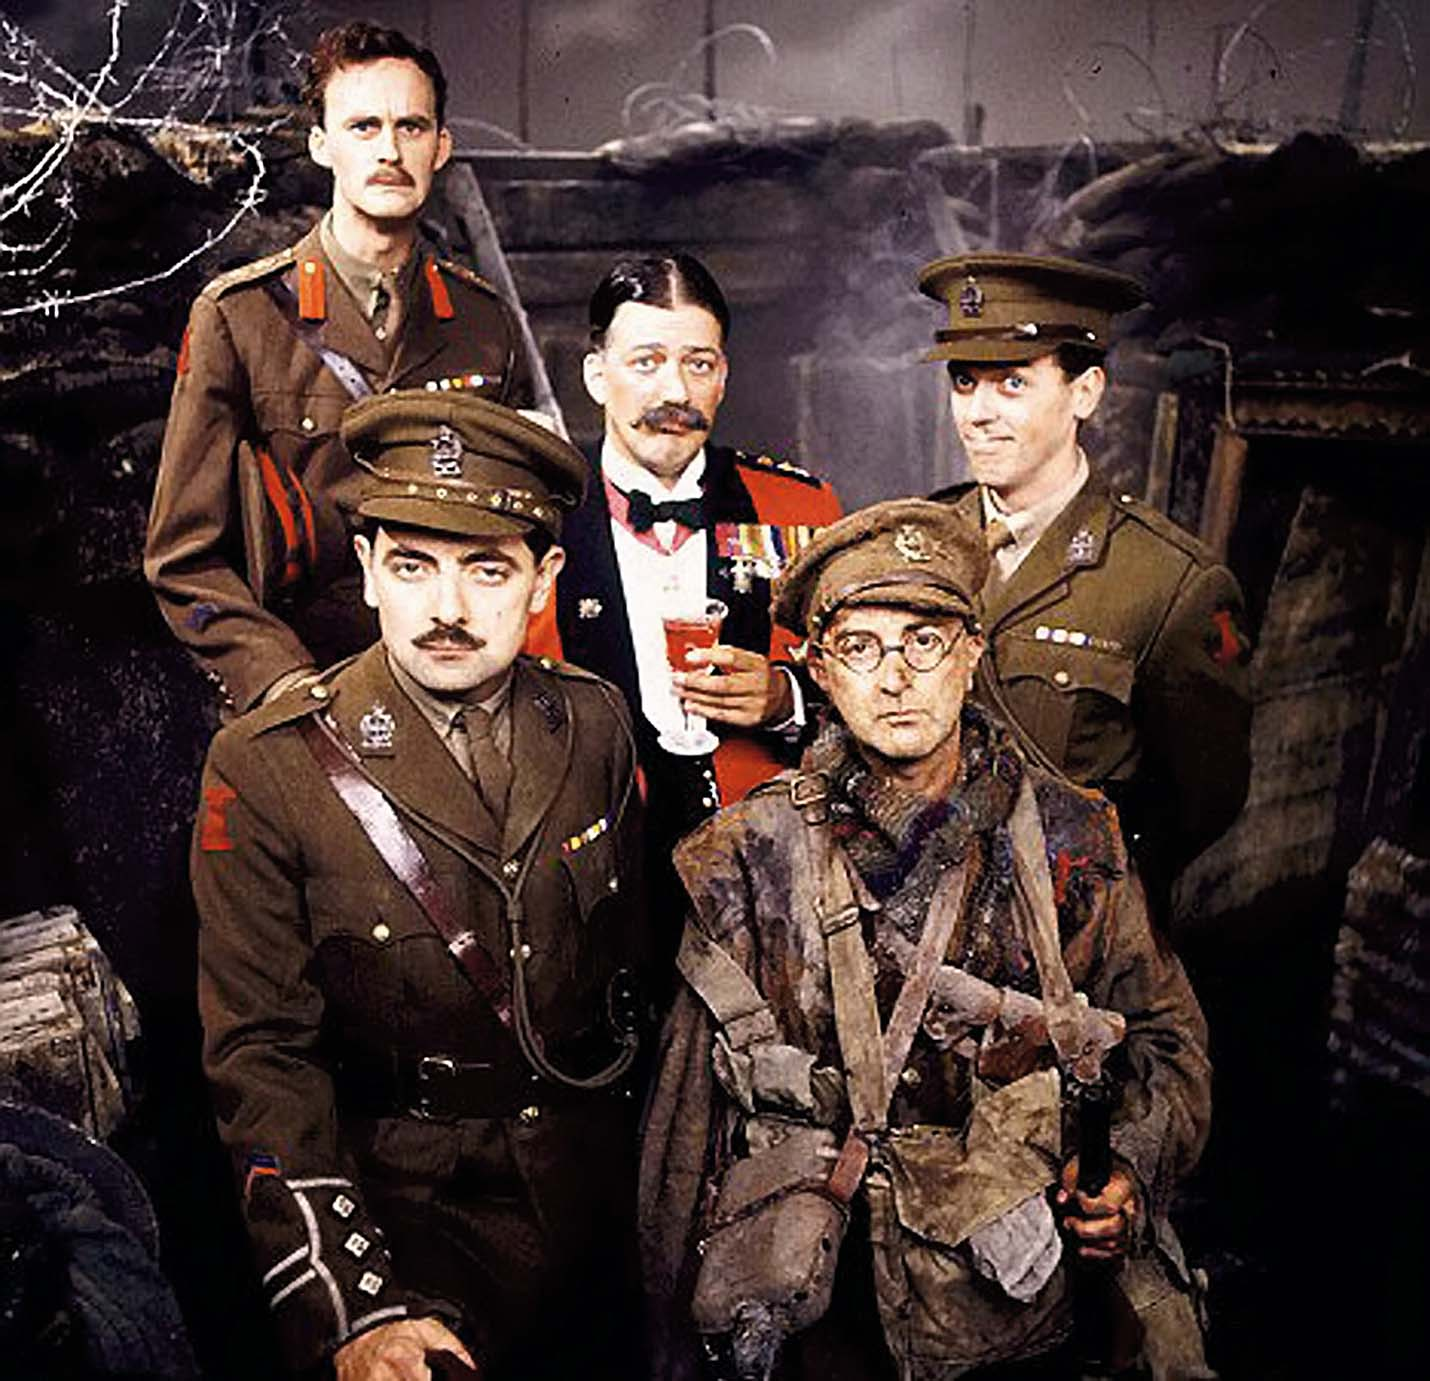 **EMBARGOED UNTIL 12.01AM ON WED 25 JUNE**  Web Grab - Blackadder Goes Forth (1989): The main characters from left front: Captain Blackadder (Rowan Atkinson), Captain Kevin Darling (Tim McInnery), General Melchett (Stephen Fry), Lieutenant George (Hugh Laurie), and Private Baldrick (Tony Robinson).  Captain Blackadder, Lieutenant George and Private Baldrick really did go forth in World War One after it emerged the comedy characters had real-life namesakes.  See NTI story NTIBLACKADDER.  The popular BBC series ran from 1983 until 1989 and ended its run in the trenches with the gang going over the top for